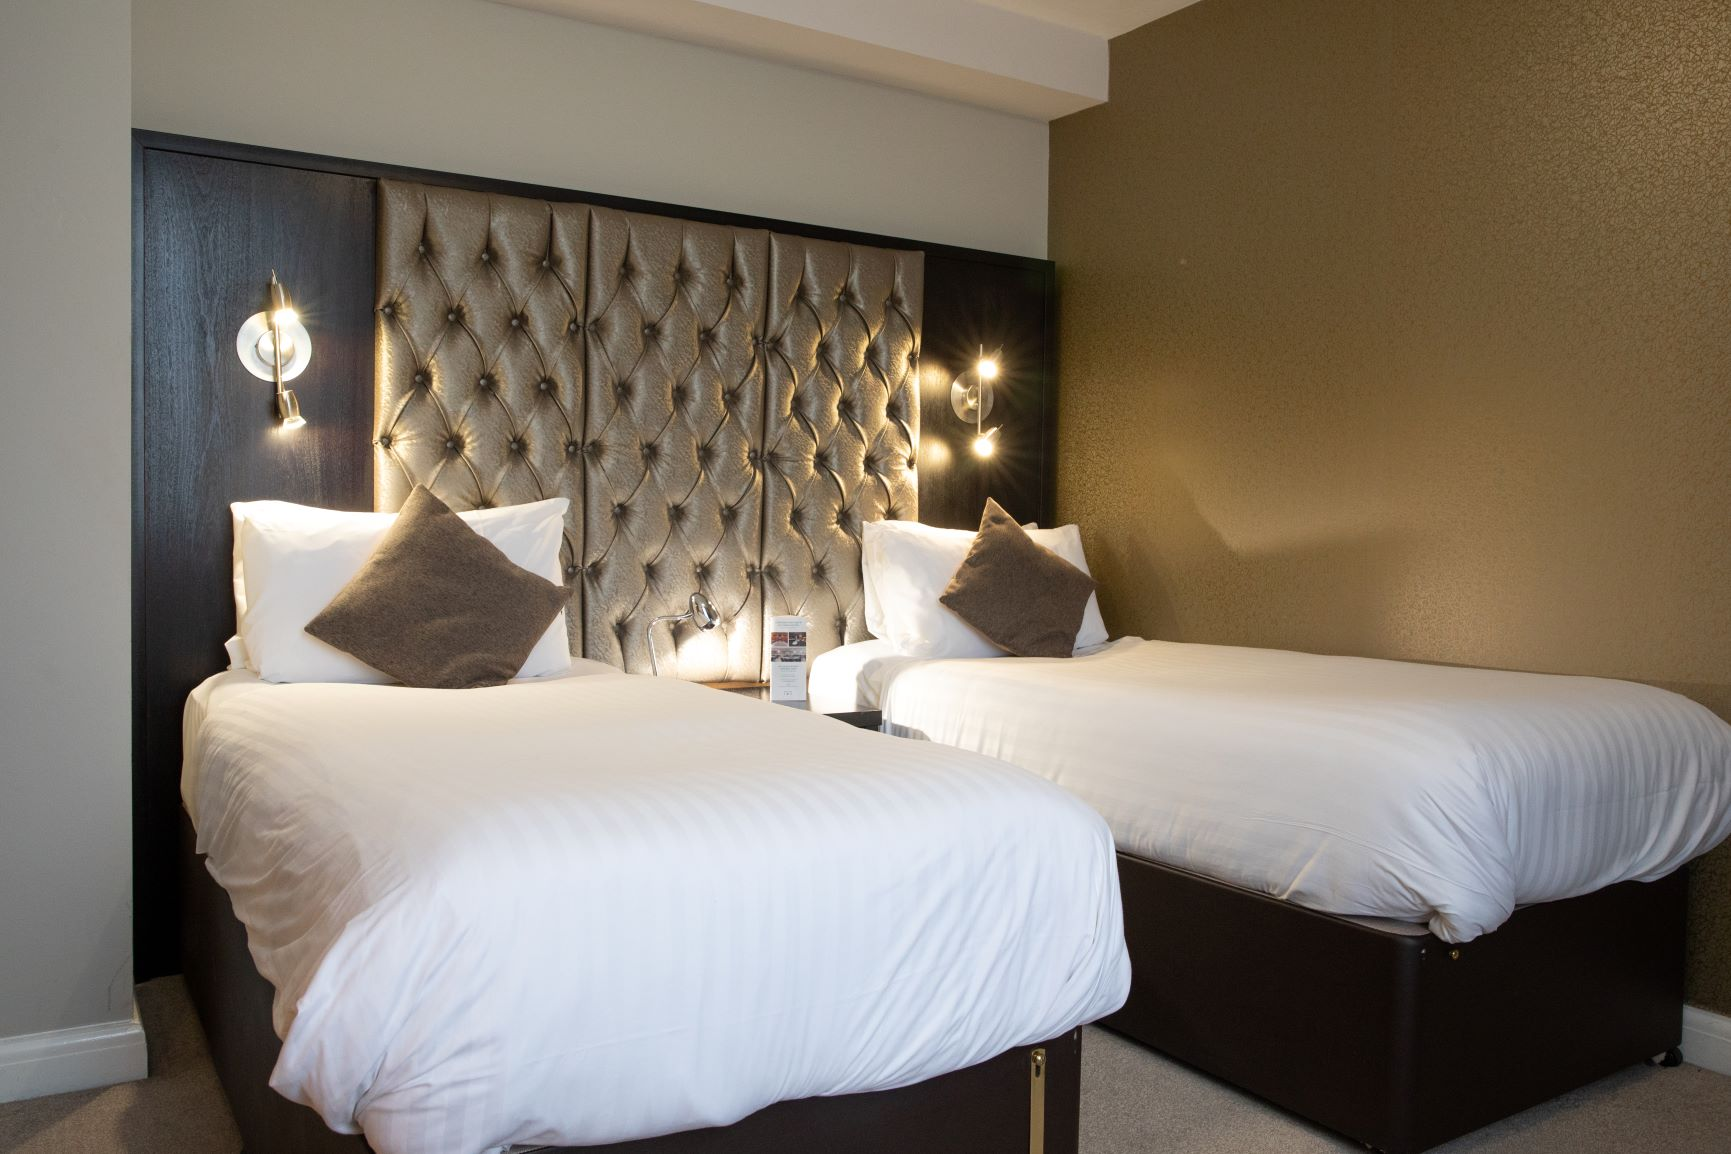 Beds at Richmond Liverpool Apartments, Centre, Liverpool - Citybase Apartments